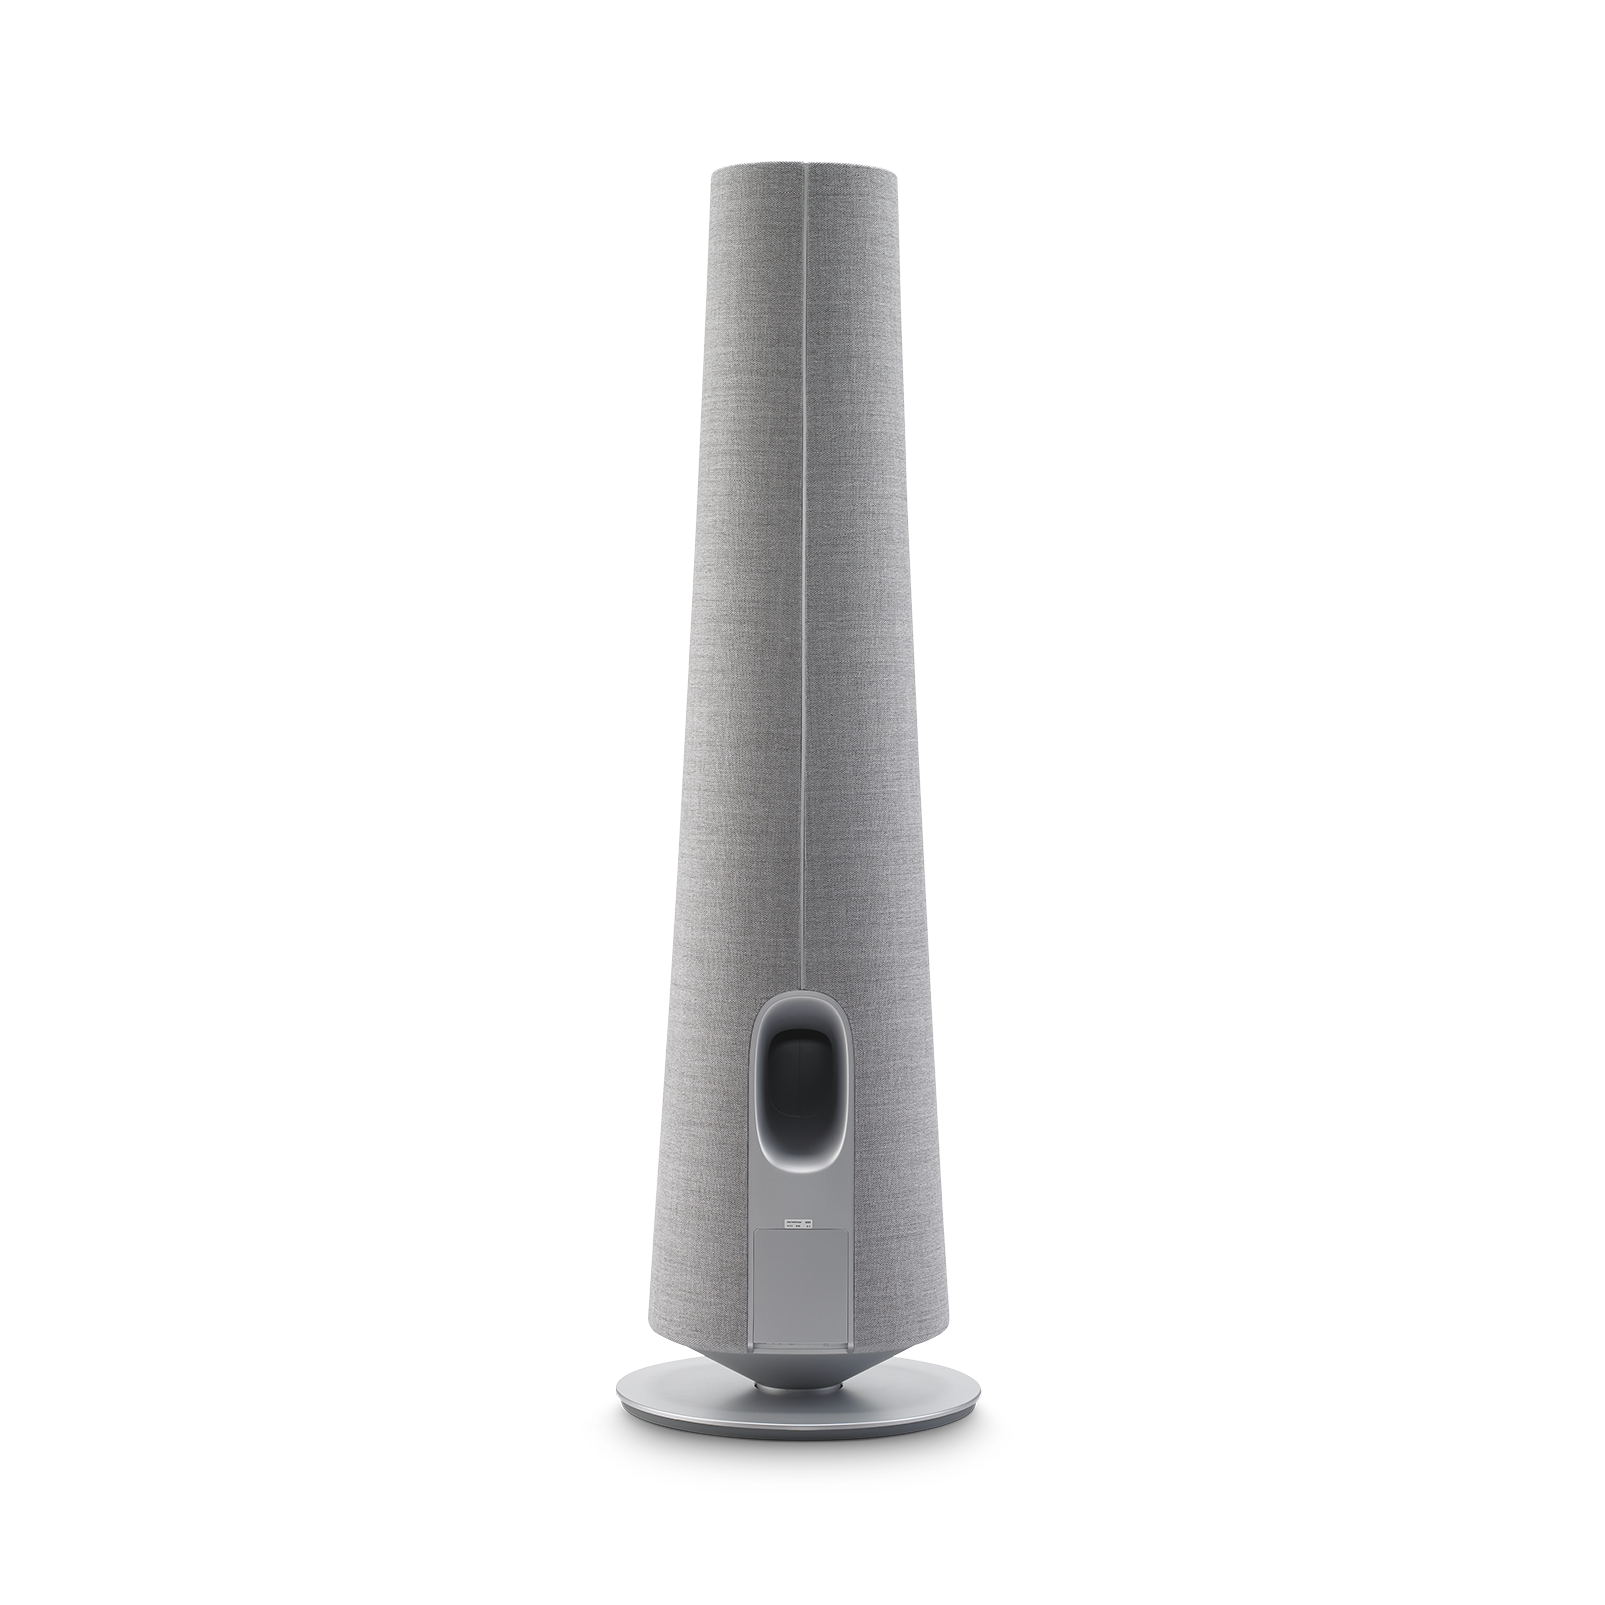 Harman Kardon Citation Tower - Grey - Smart Premium Floorstanding Speaker that delivers an impactful performance - Back